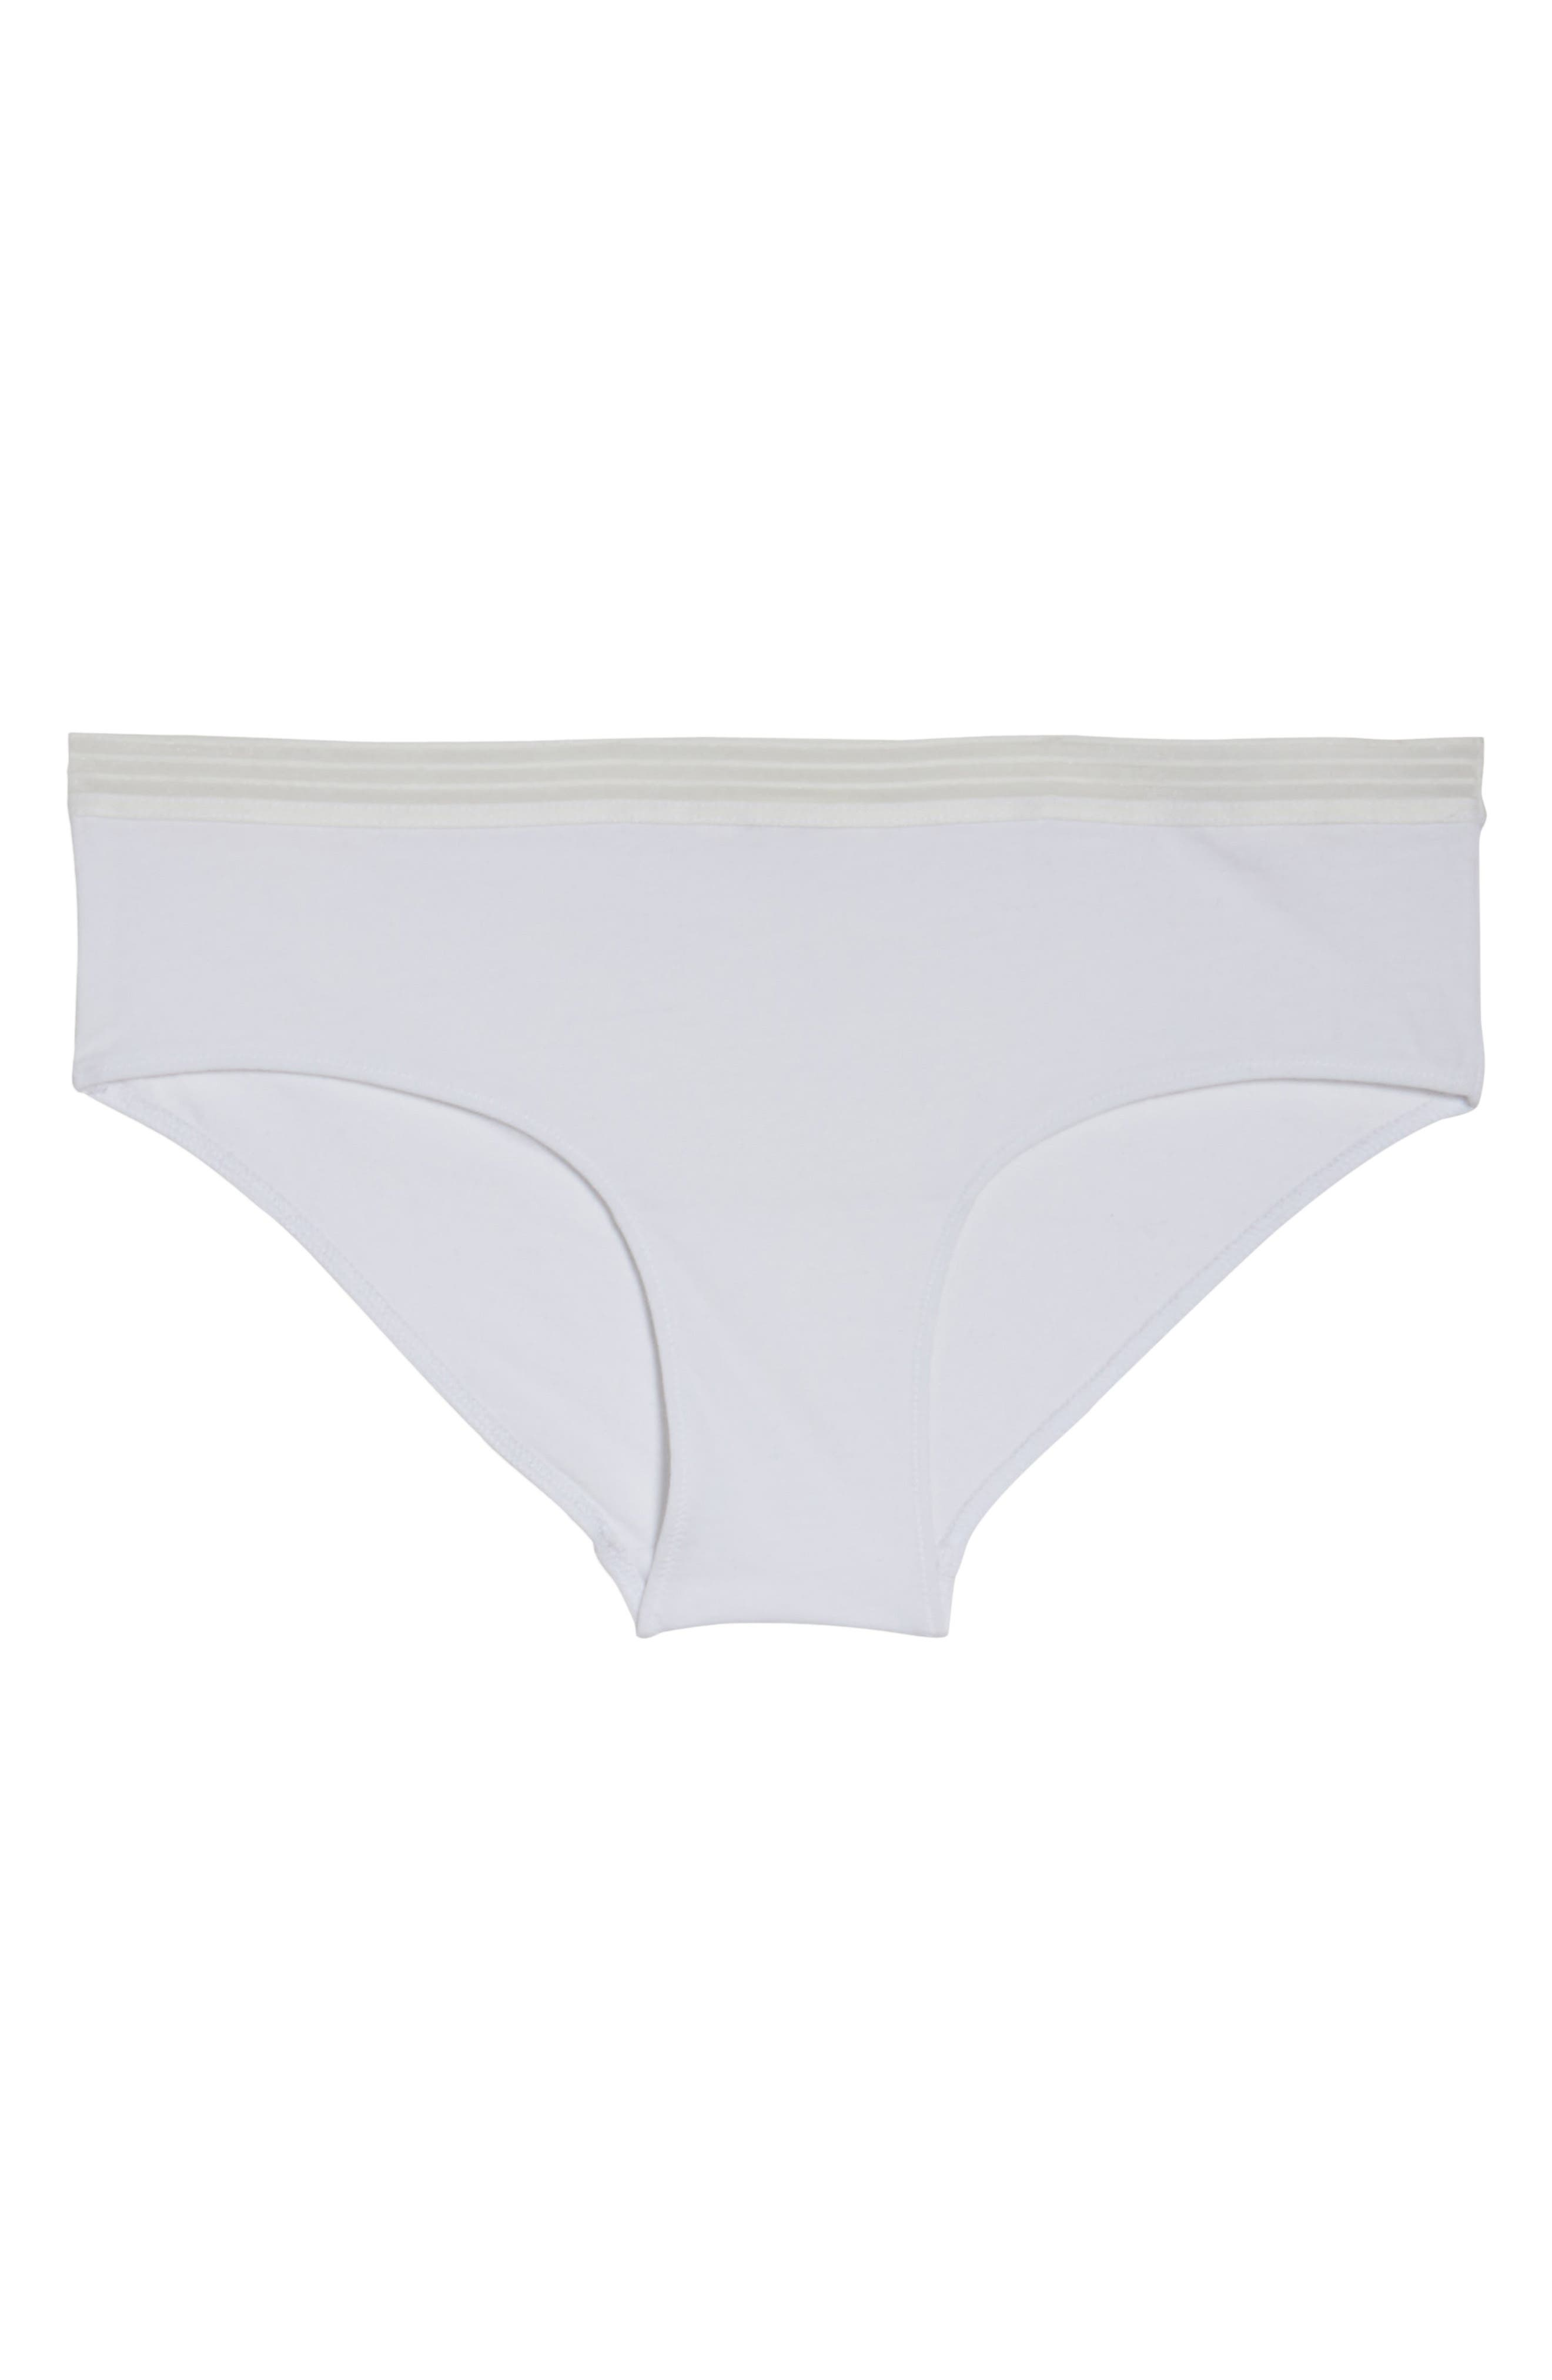 Sienna Hipster Briefs,                             Alternate thumbnail 10, color,